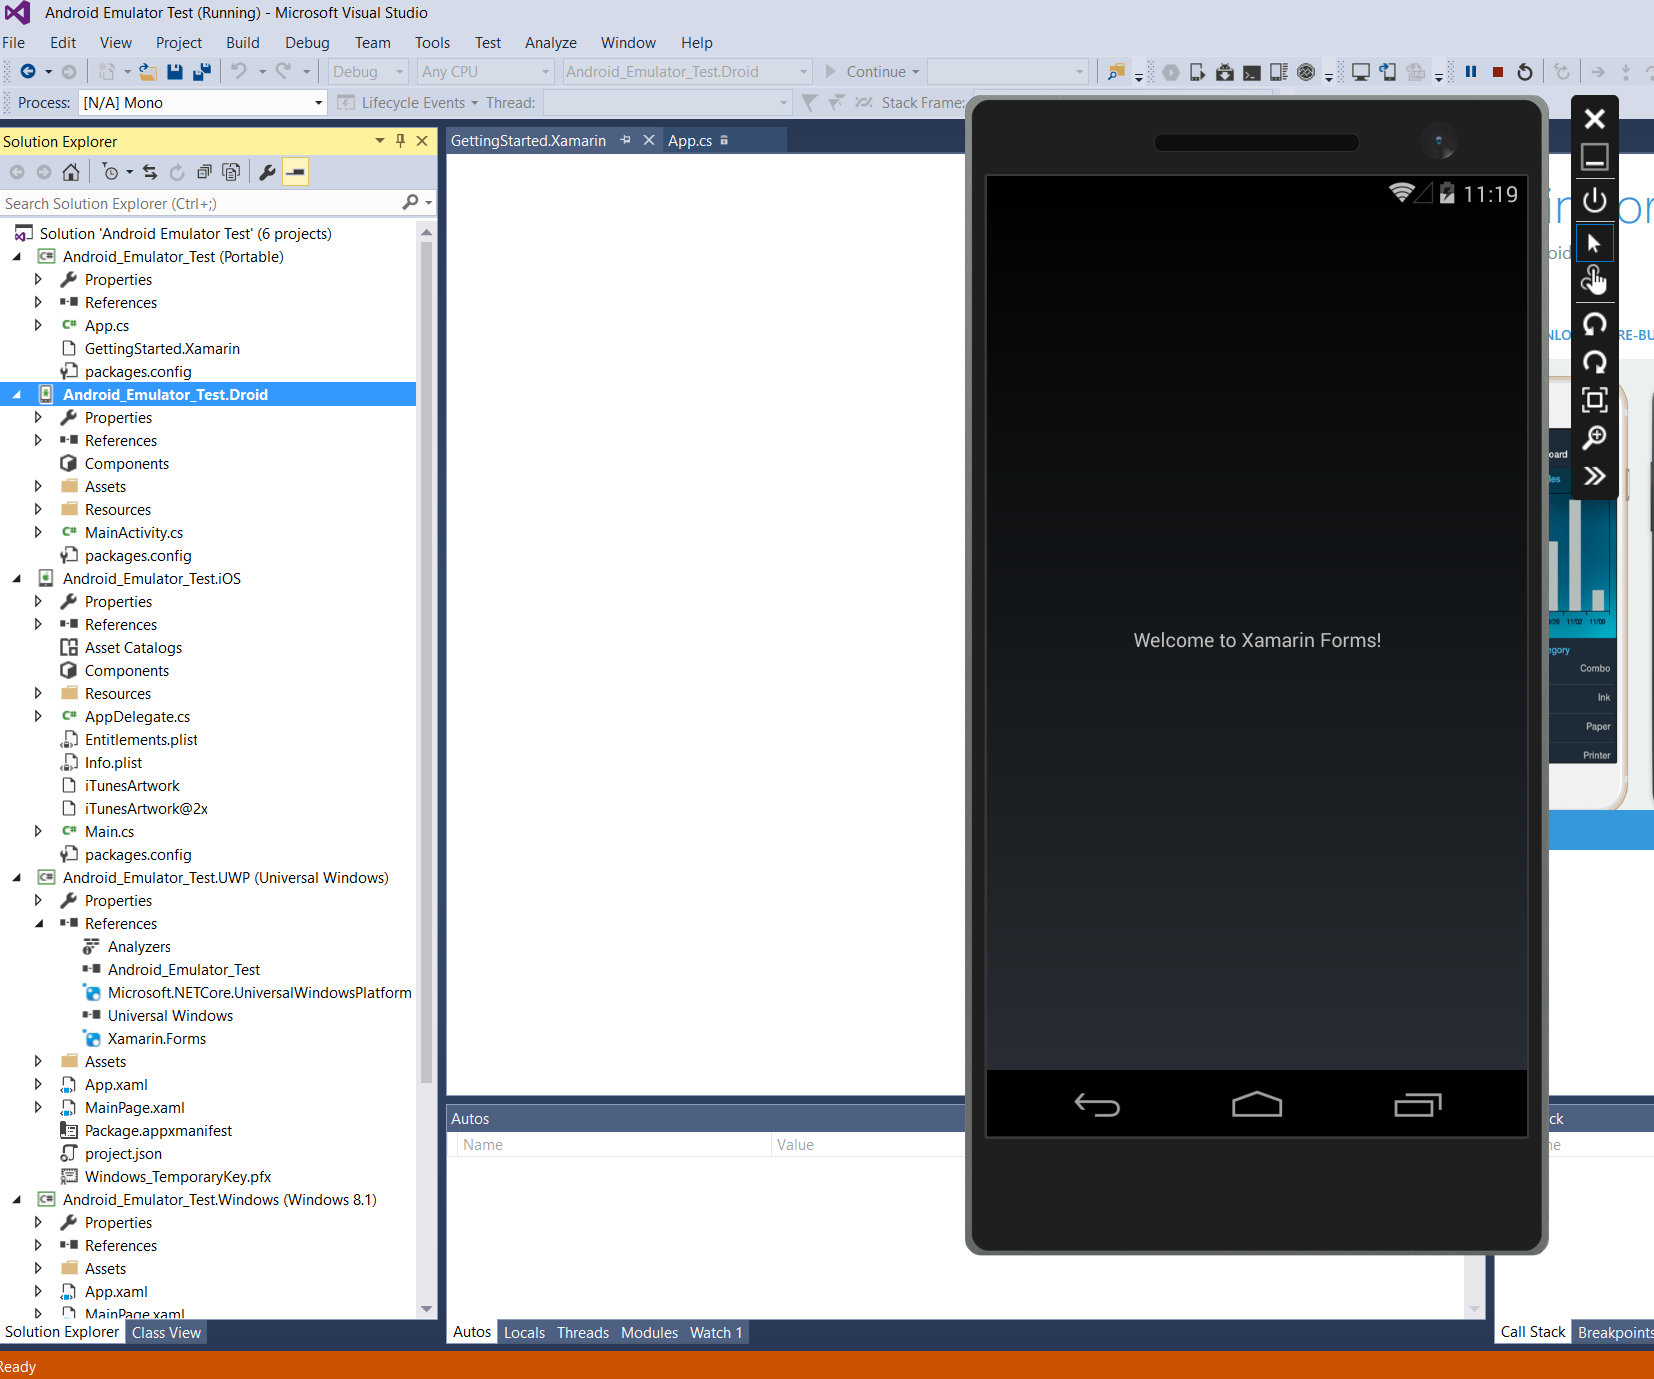 Debug your Xamarin Apps with the Visual Studio Android Emulator